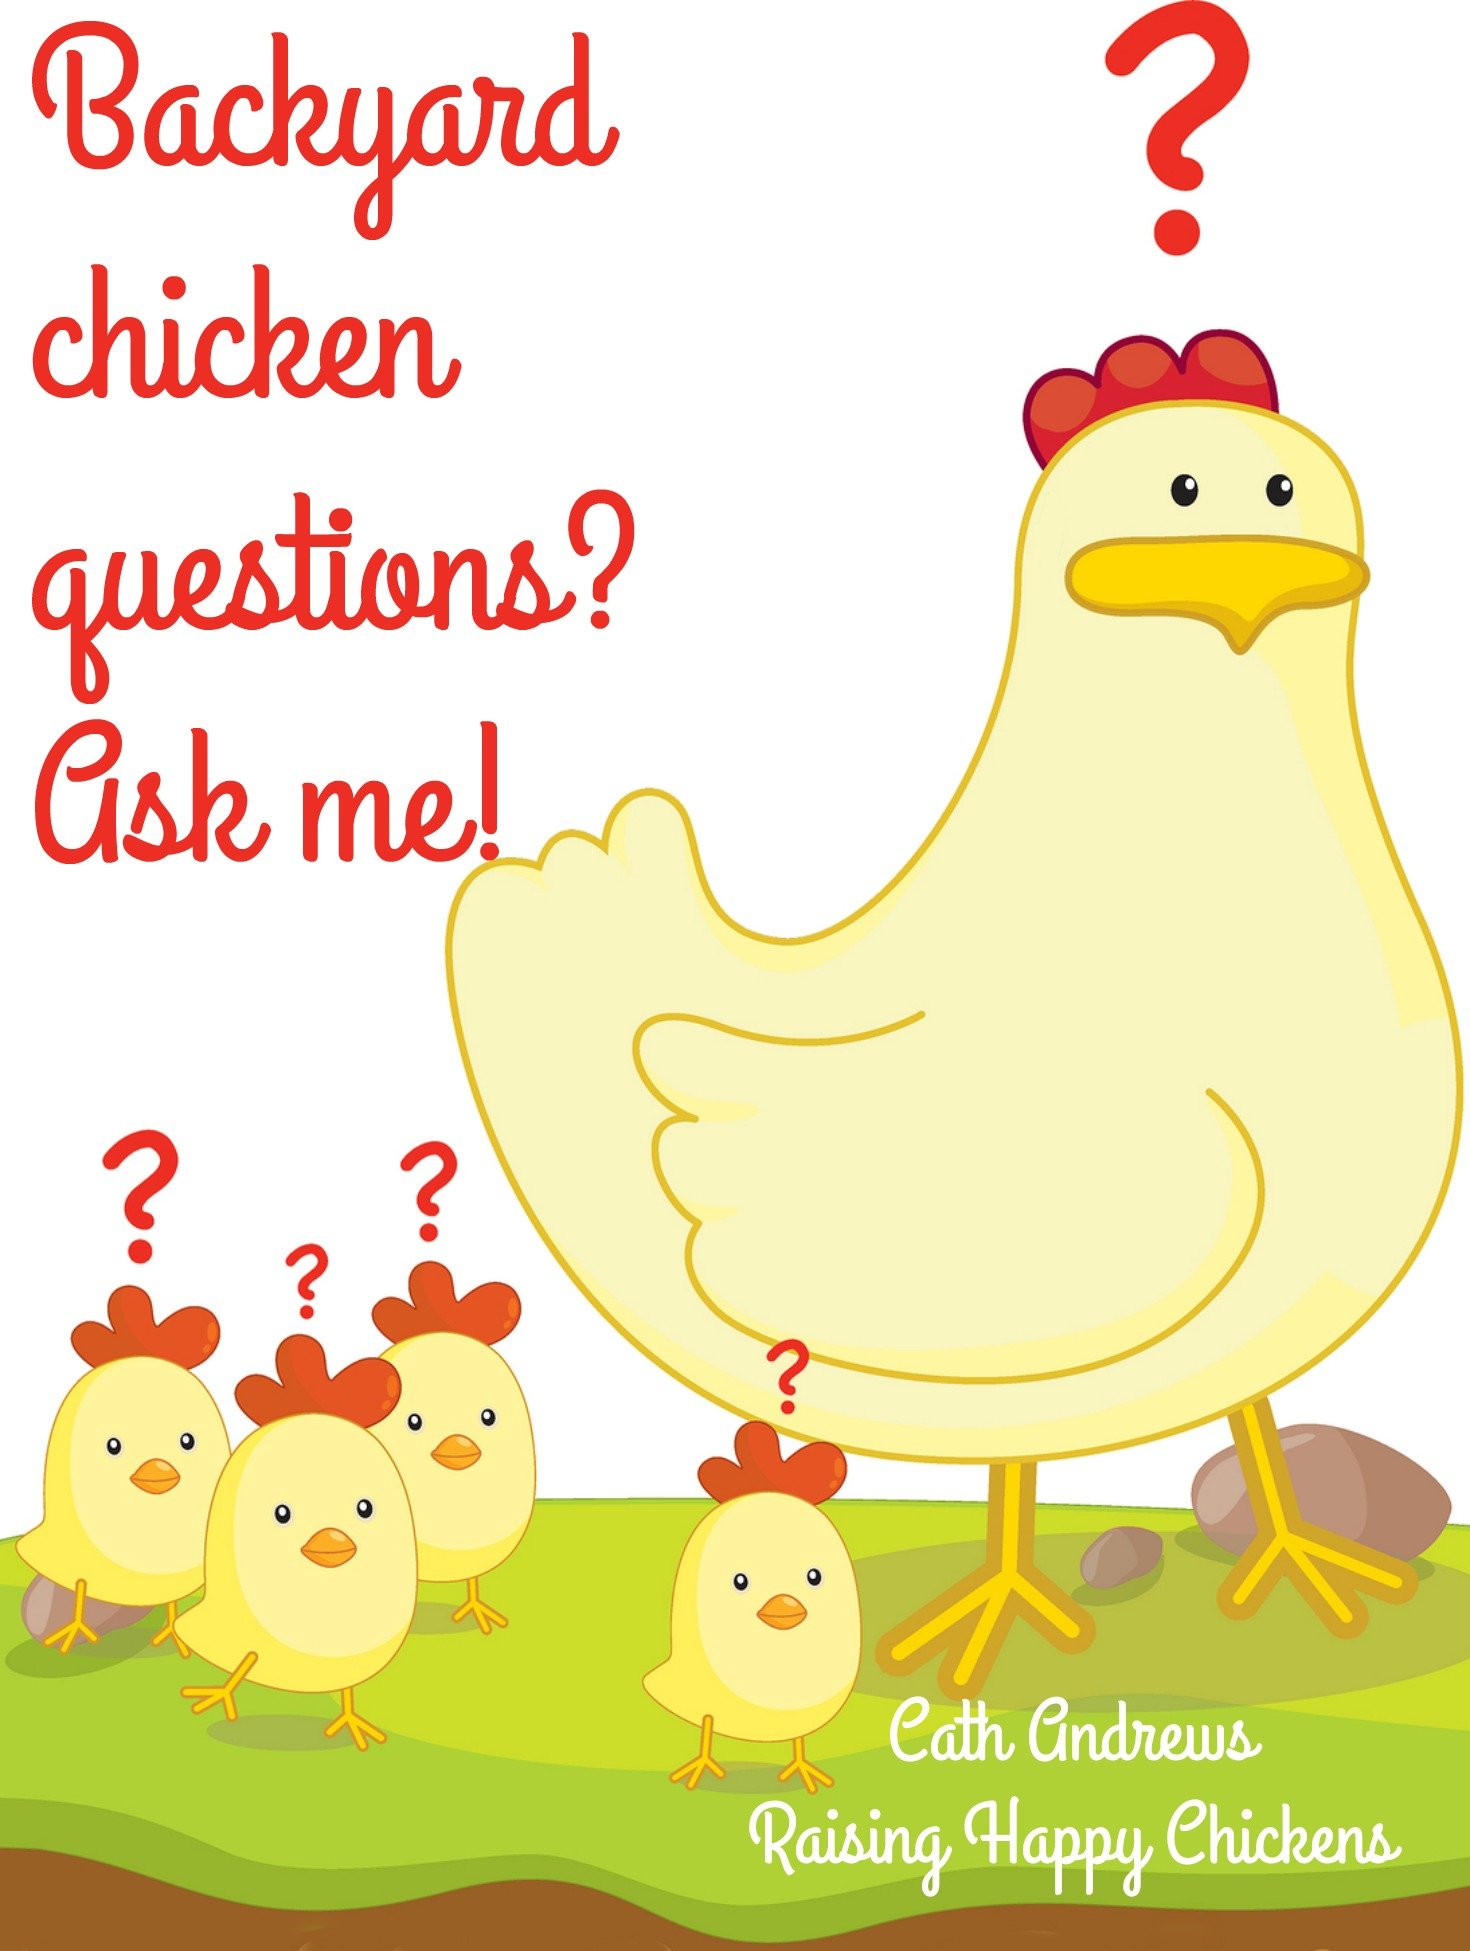 Hen with chicks ask questions.